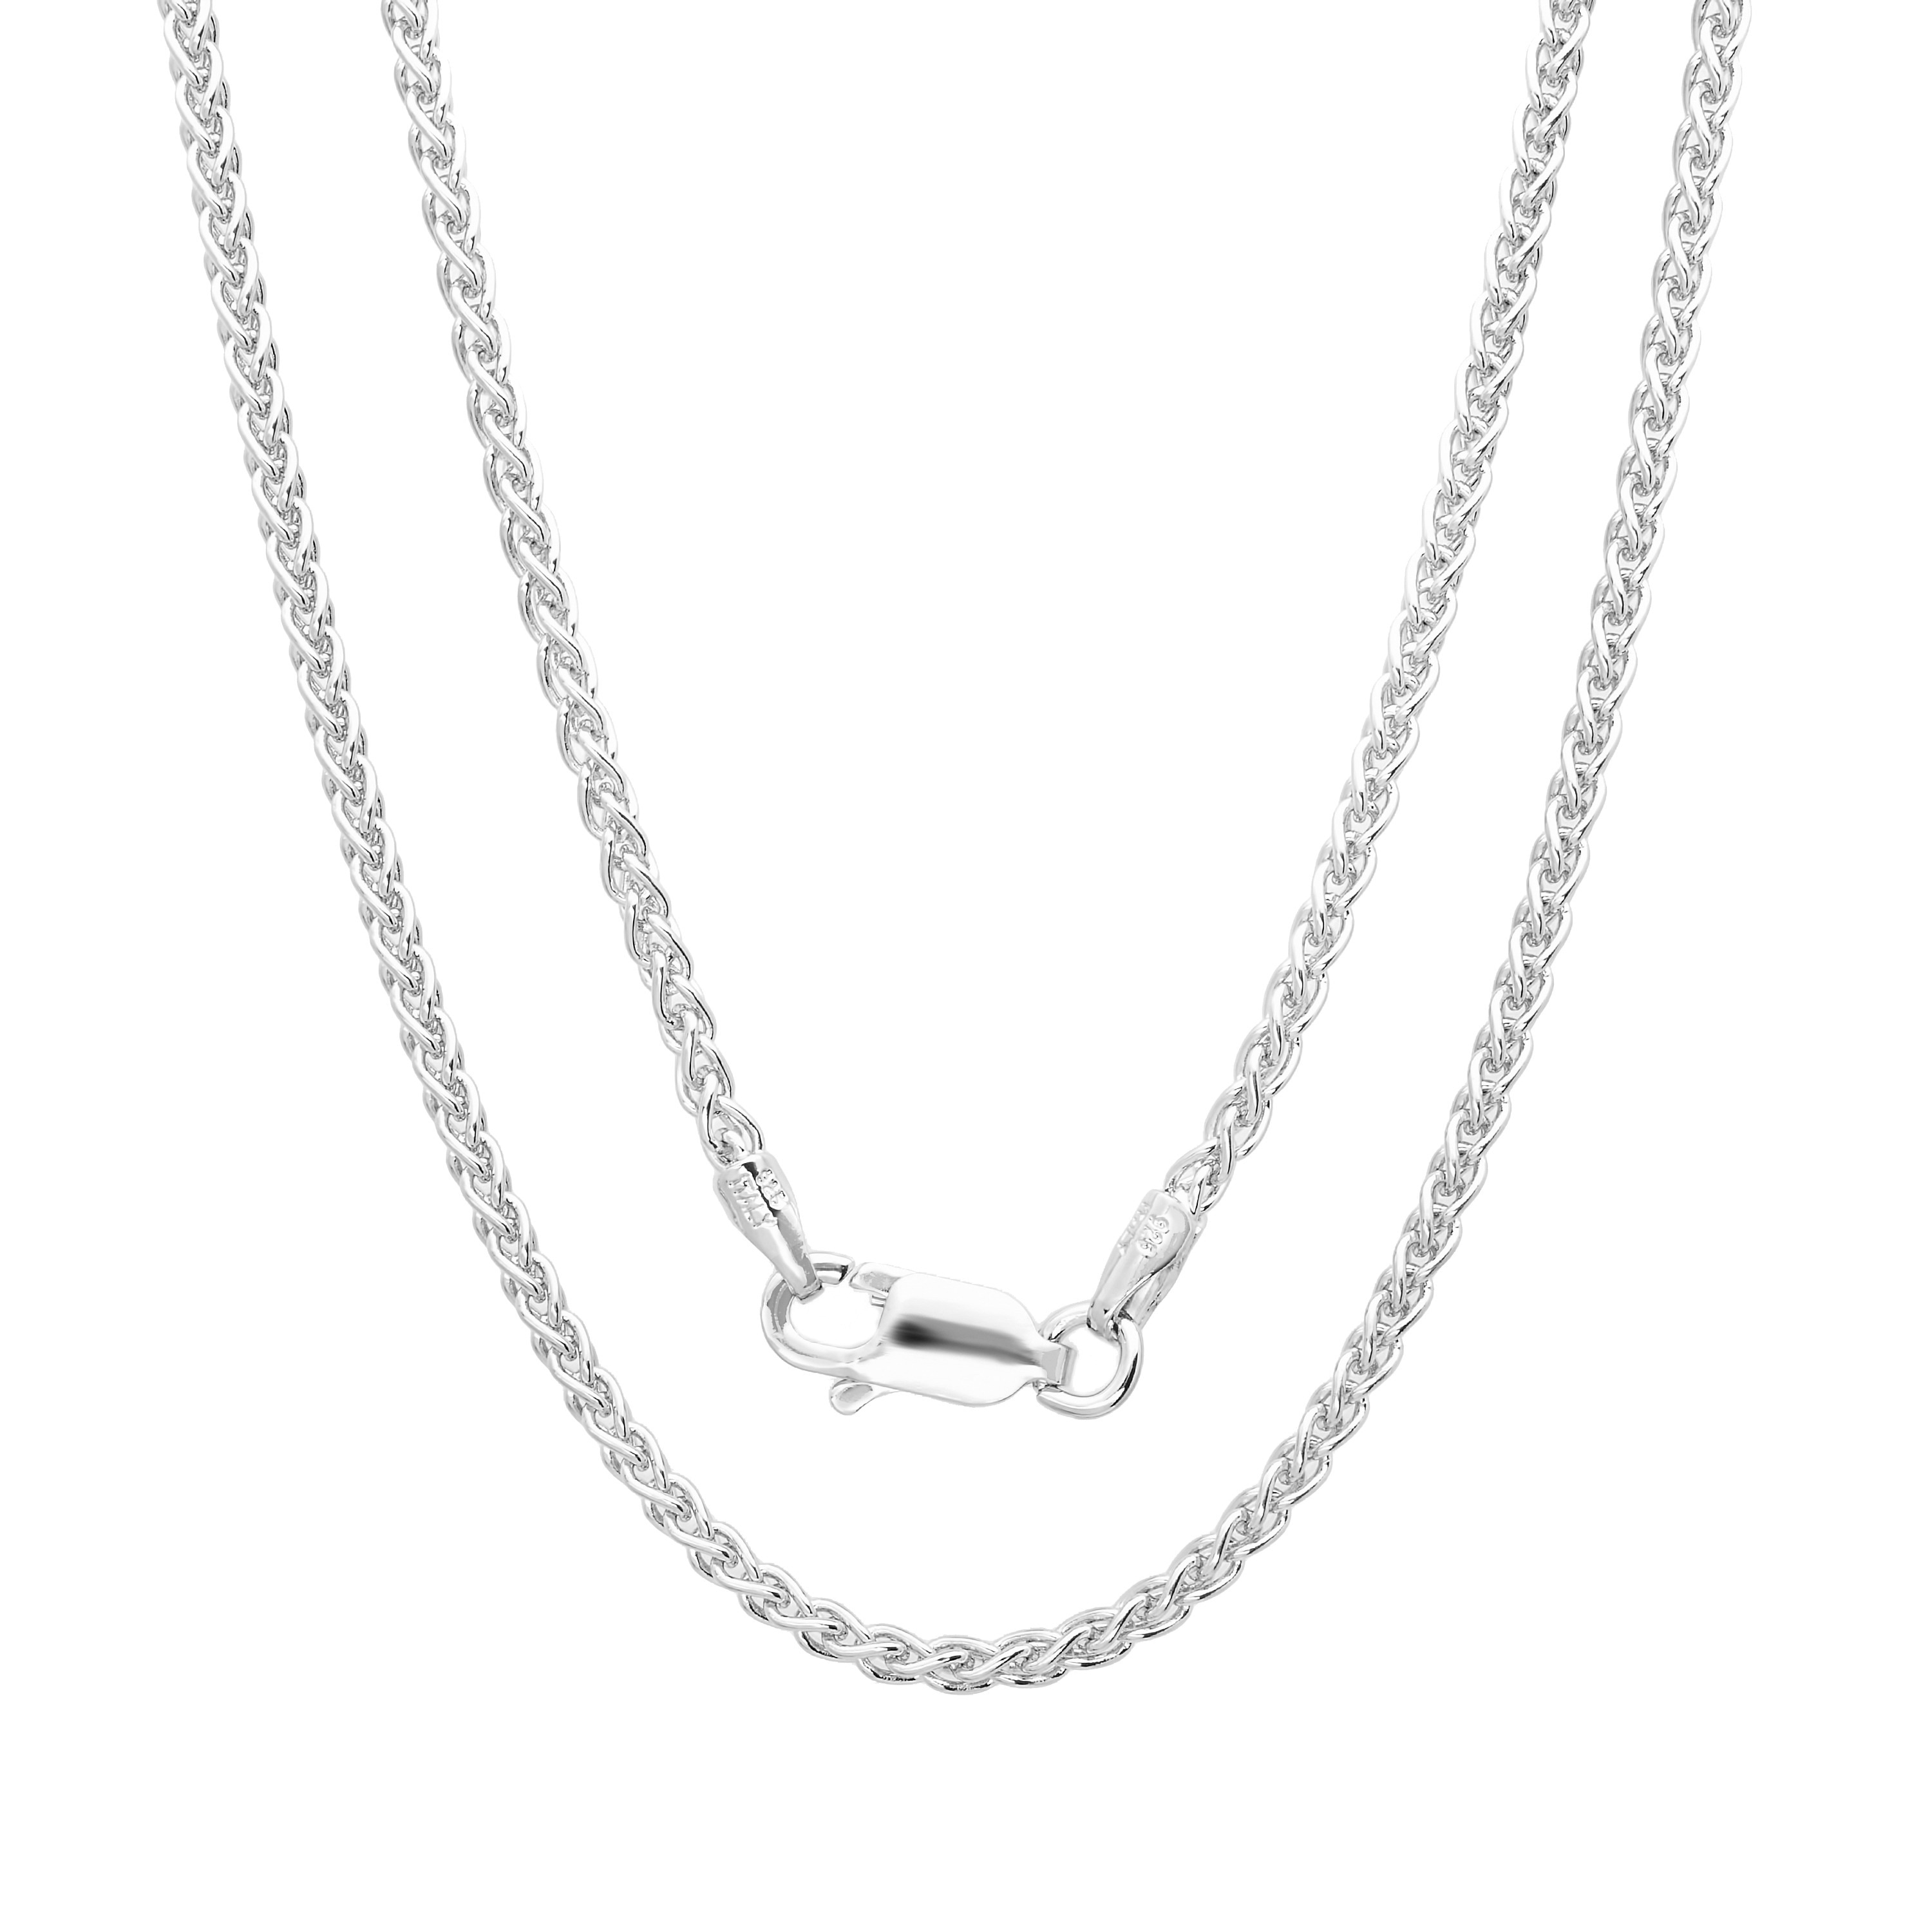 Italian Sterling Silver 1.5 mm Wheat Chain Anklet (9 Inch...